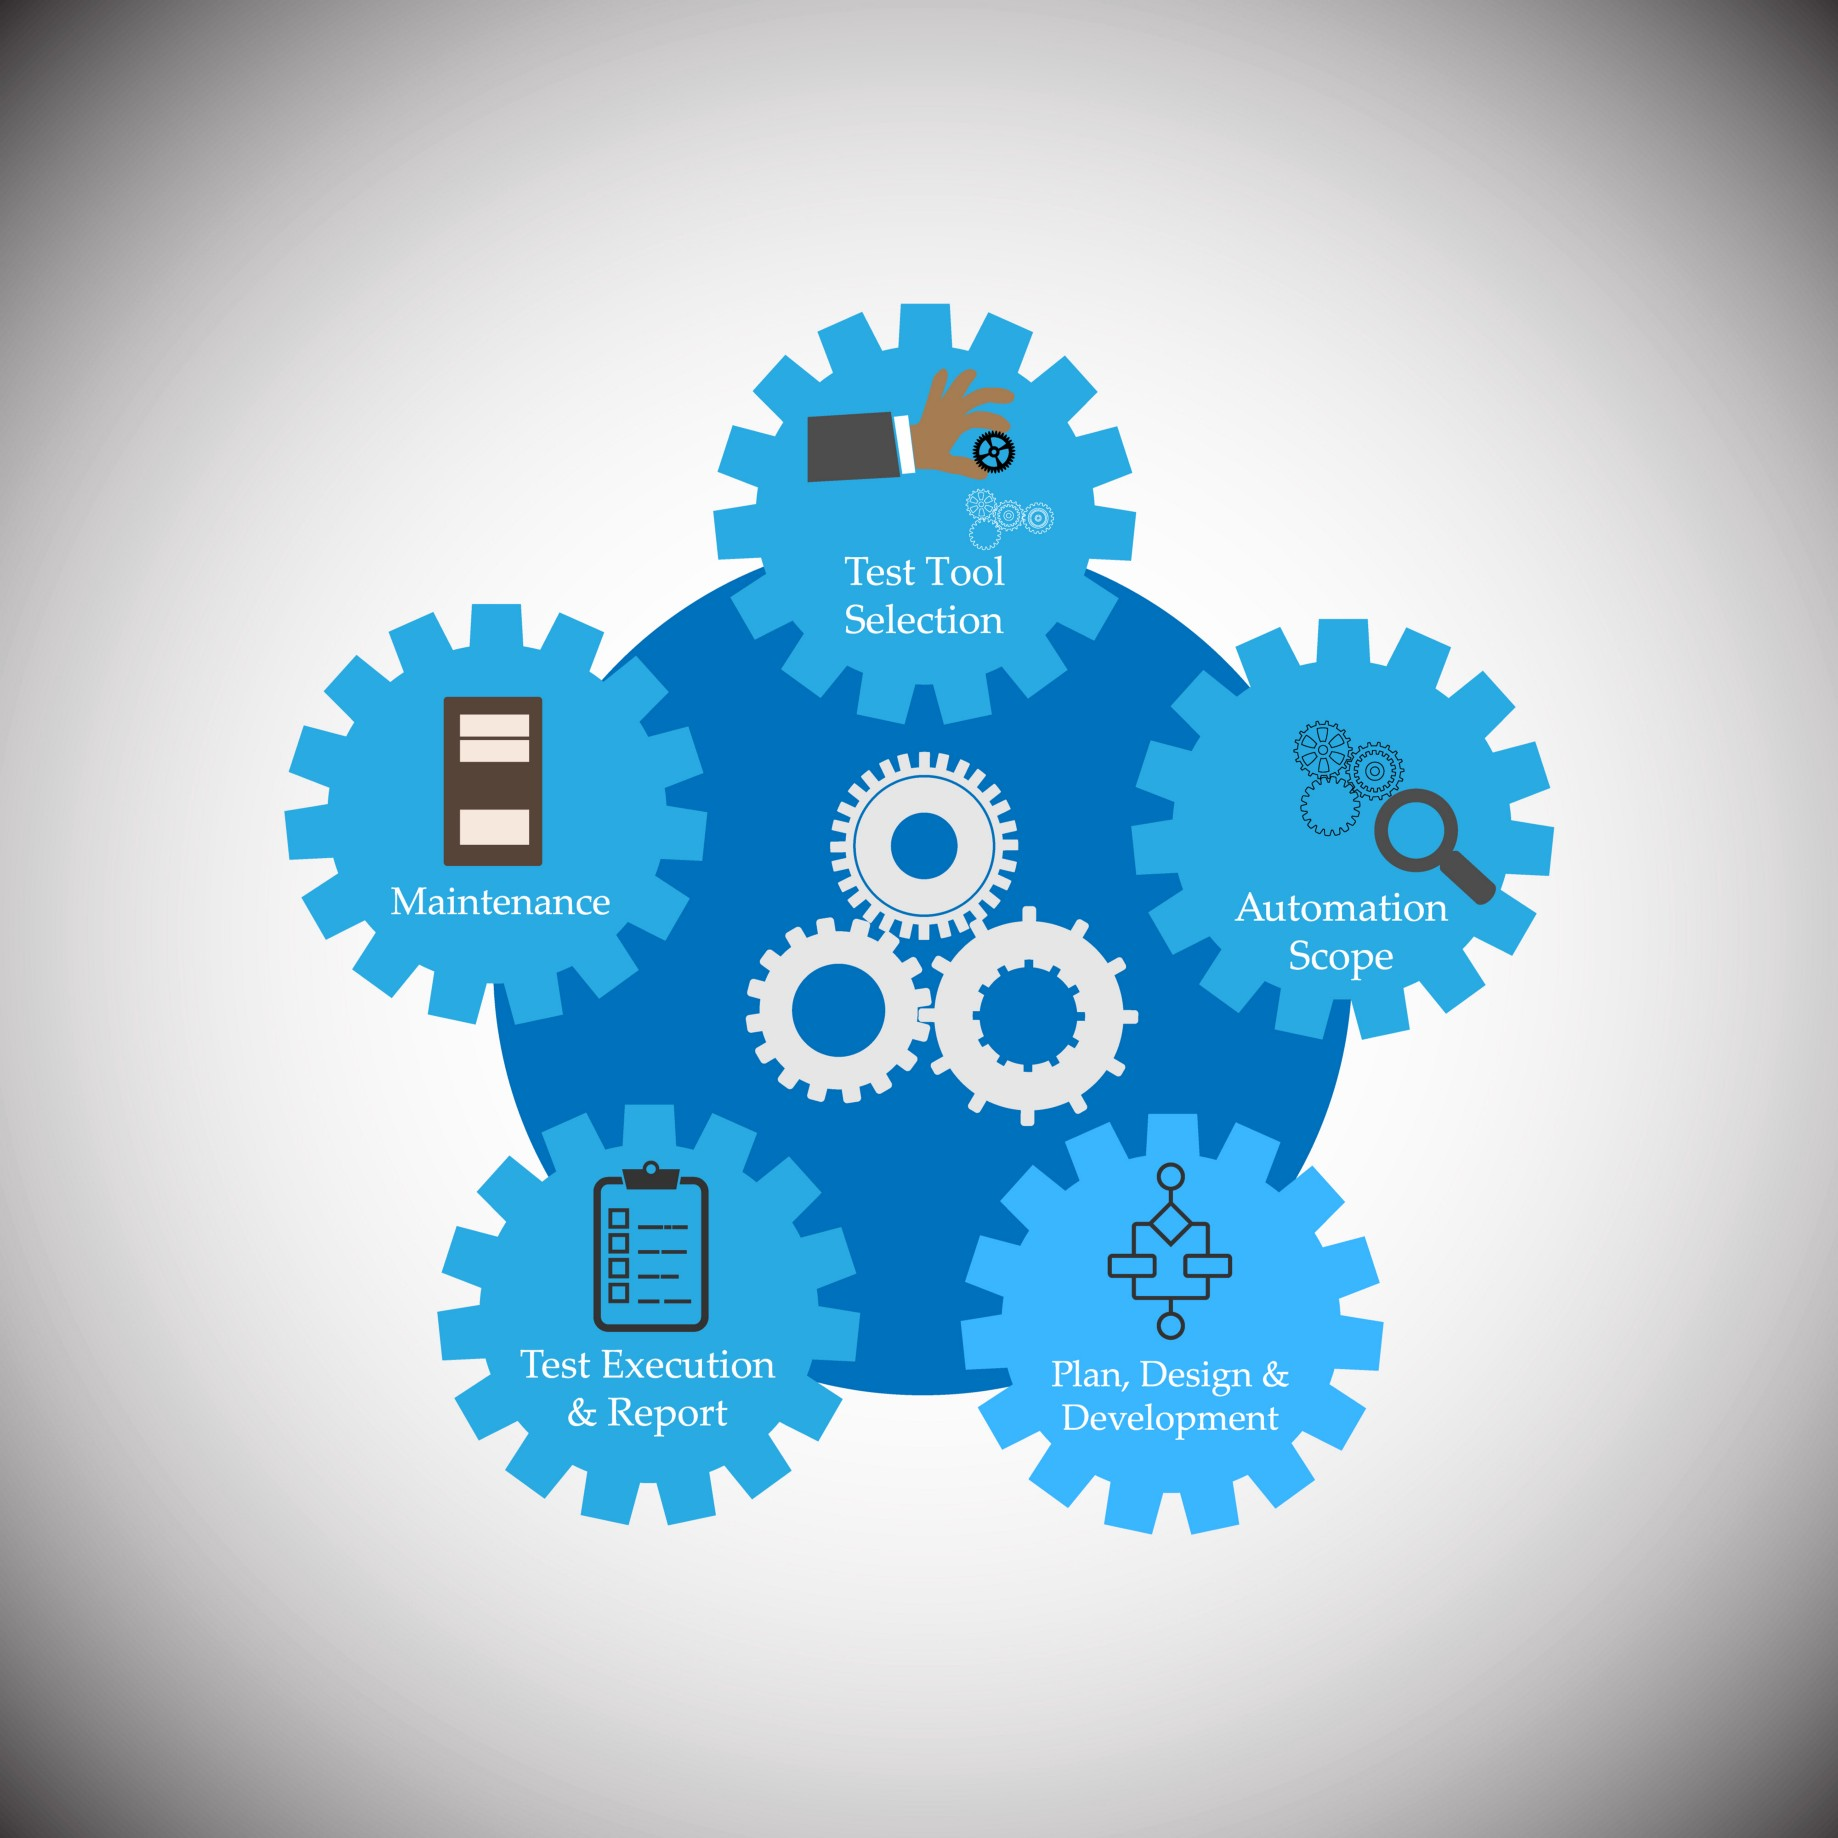 How to build a test automation framework that will be used by the